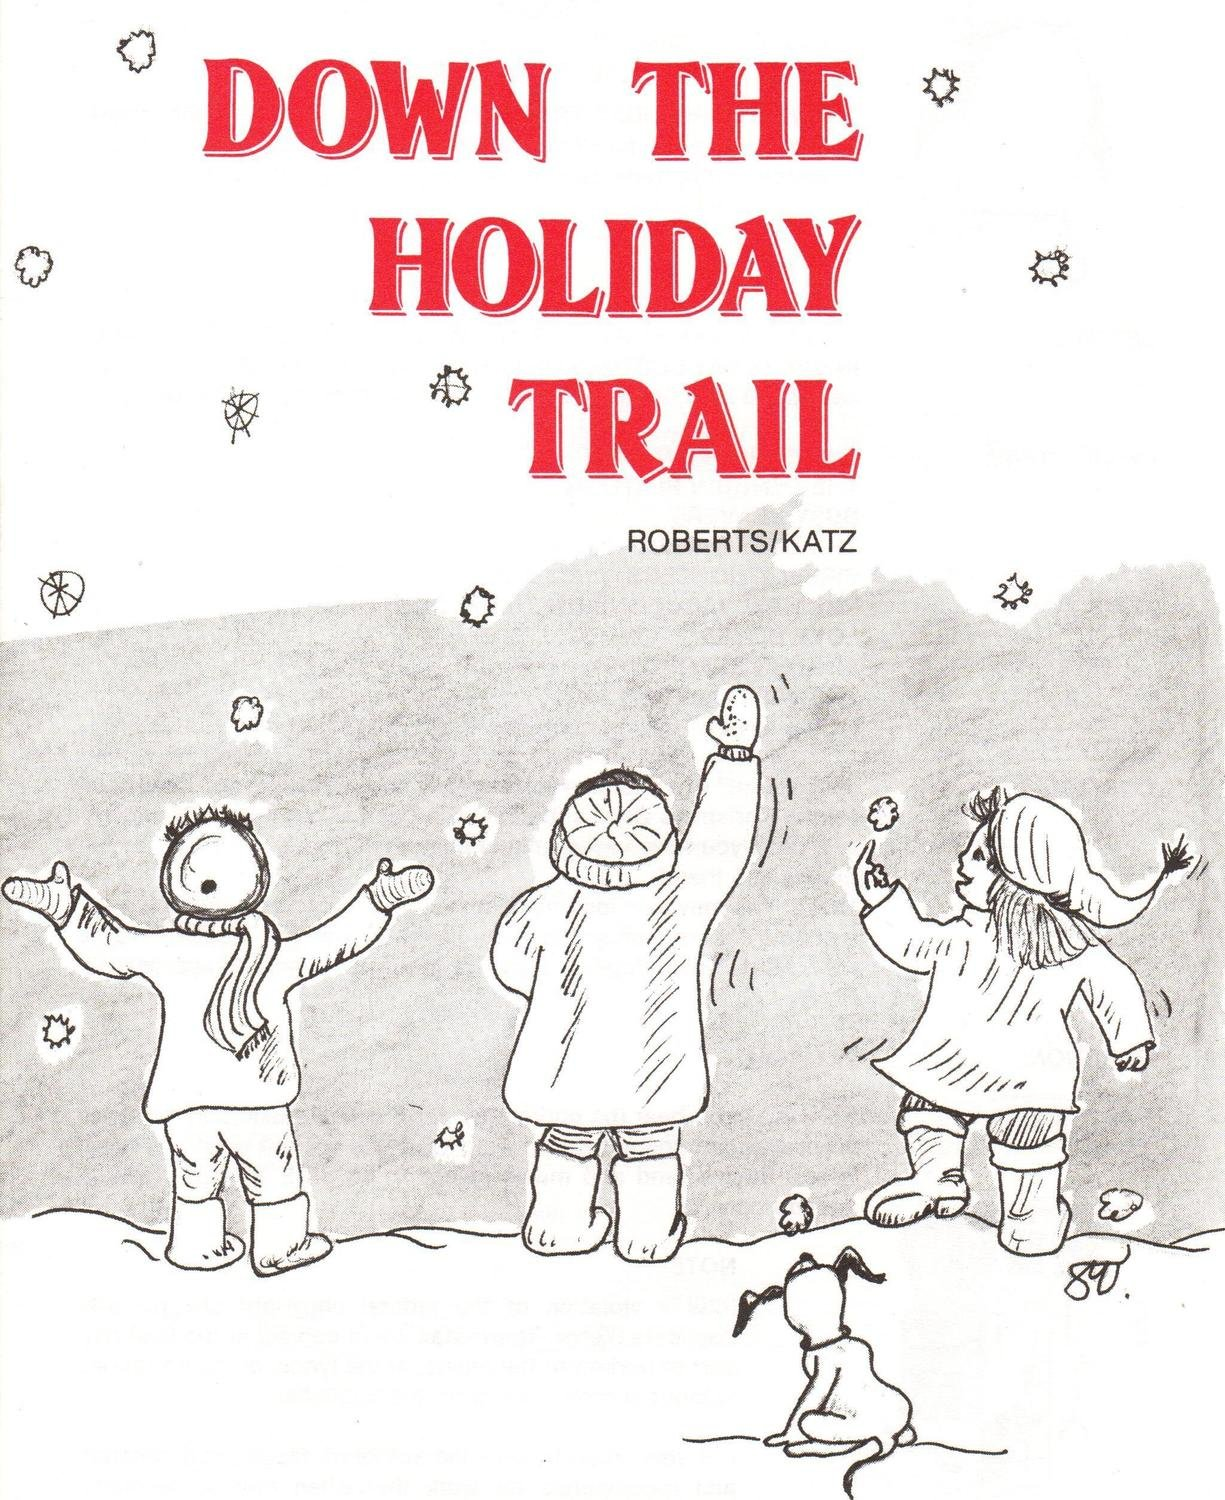 Down the Holiday Trail - CD Kit